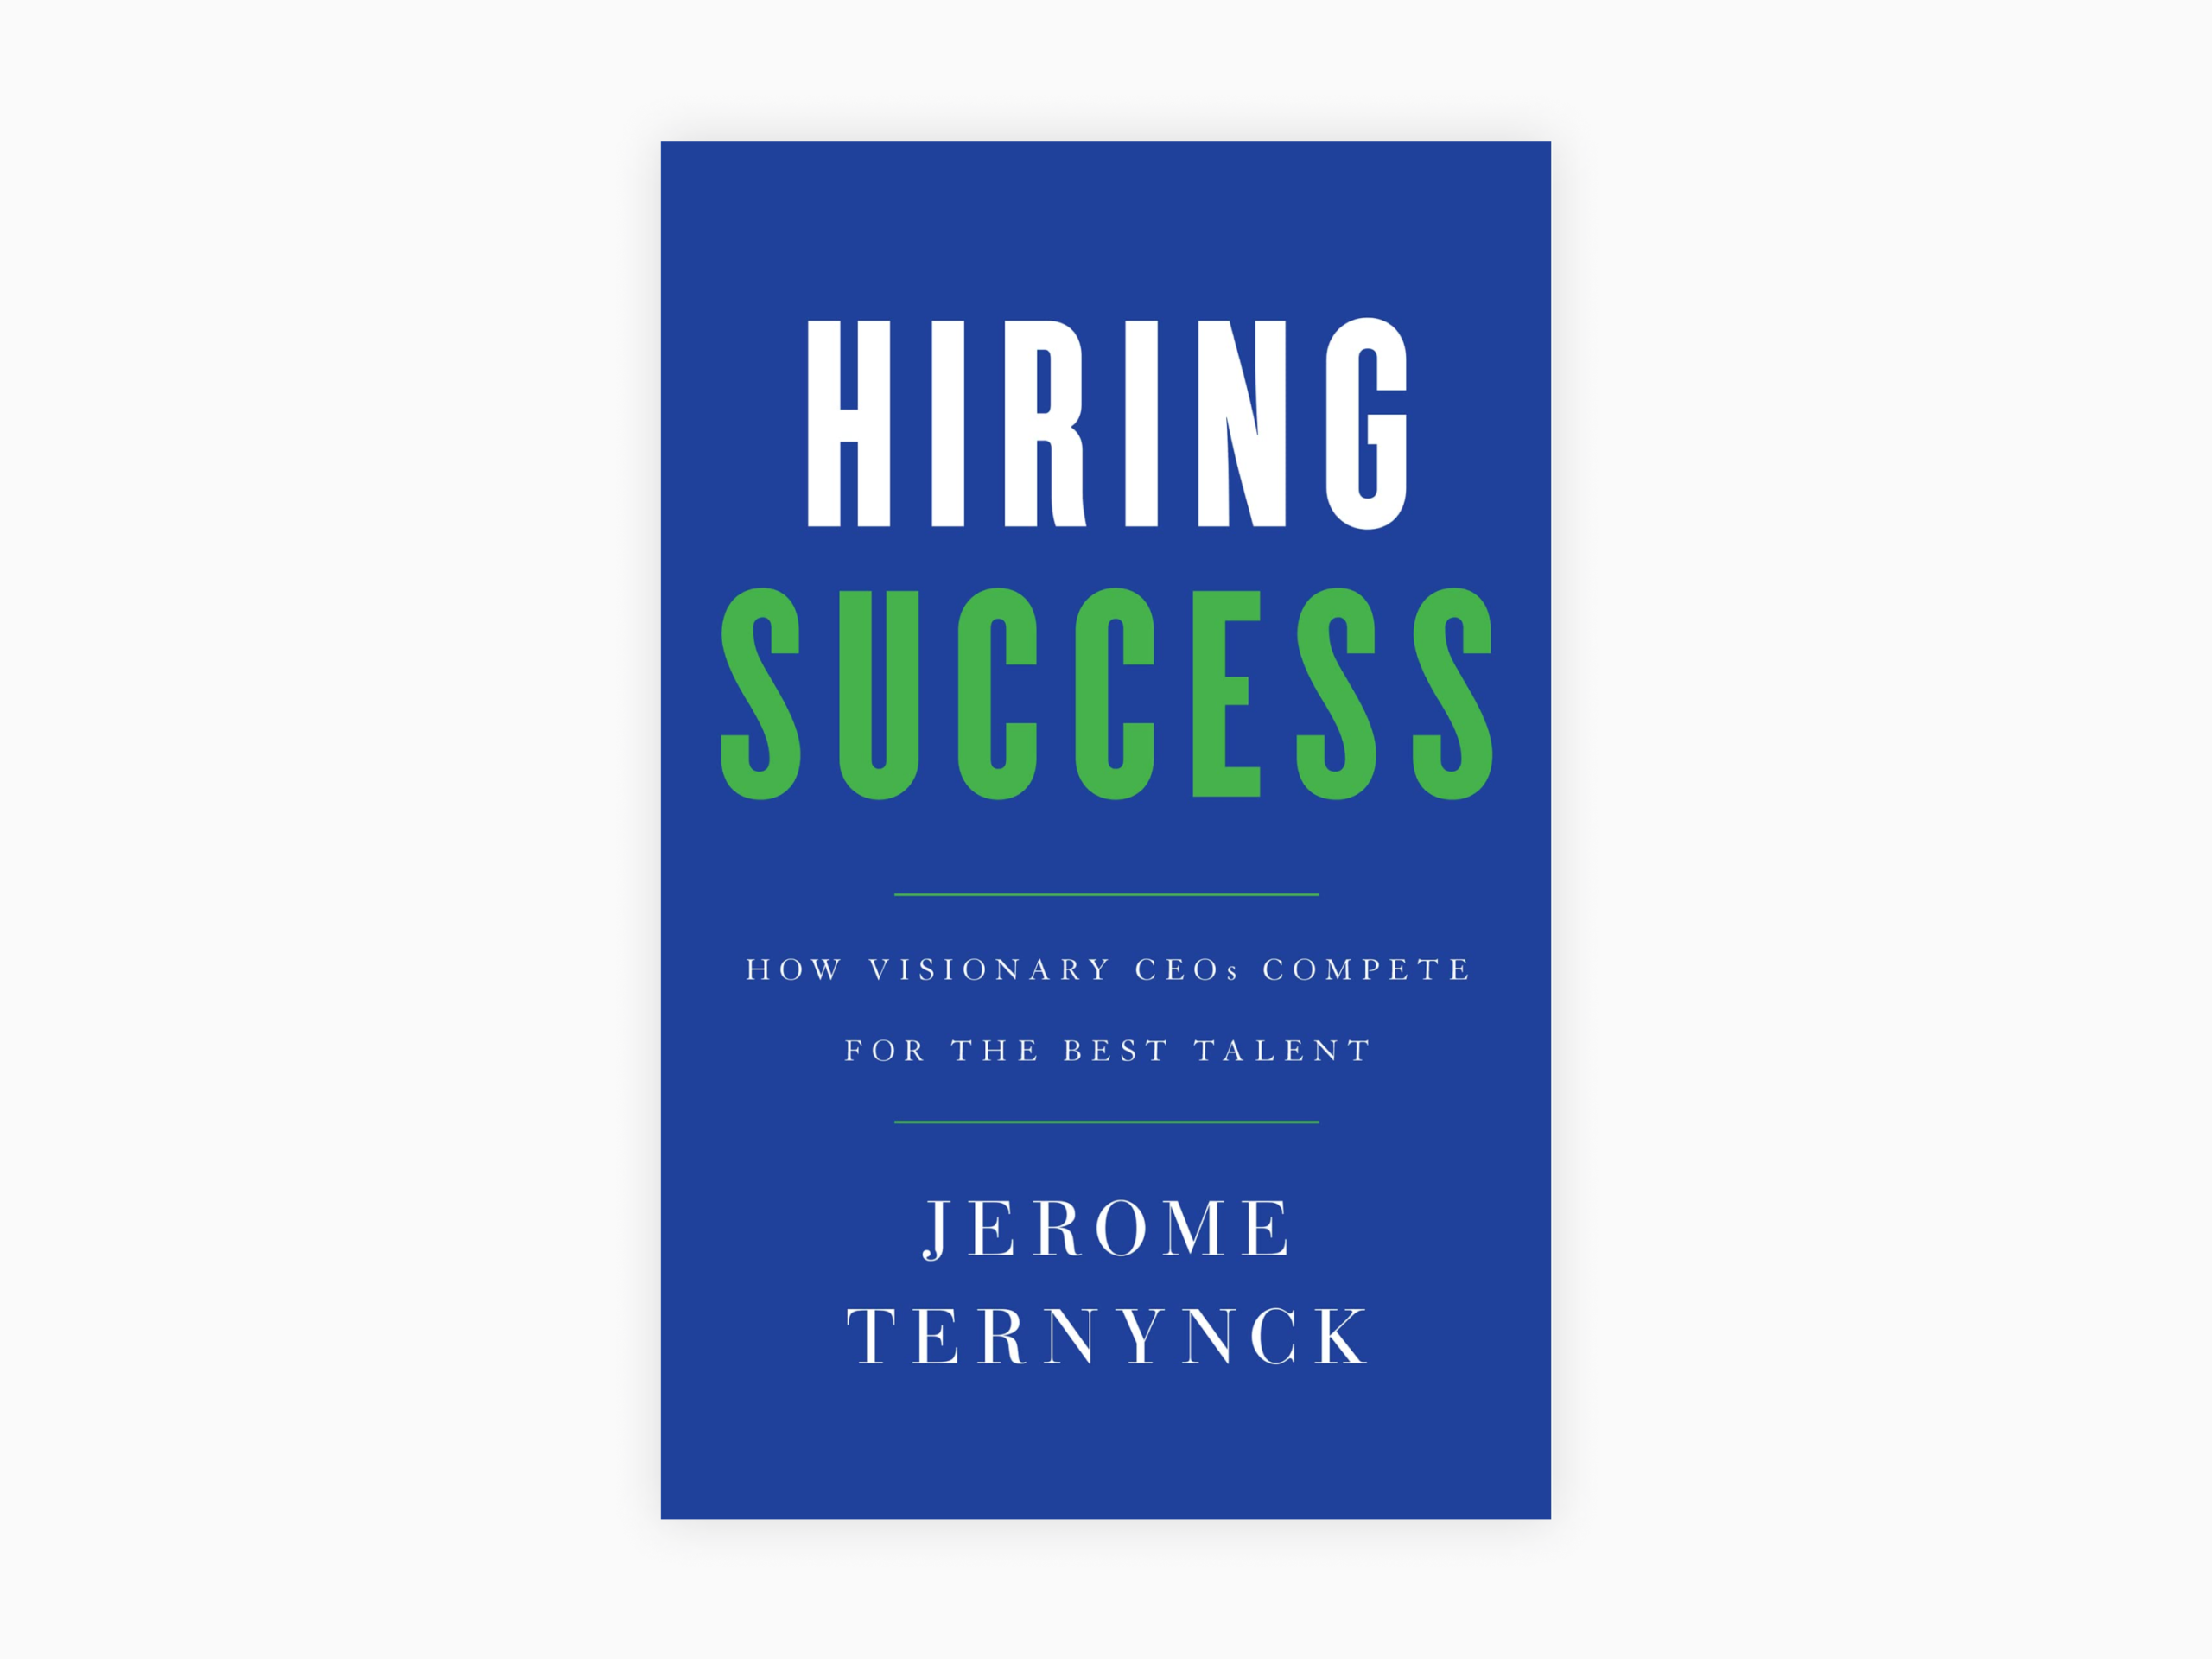 Book cover of hiring success by jerome ternynck